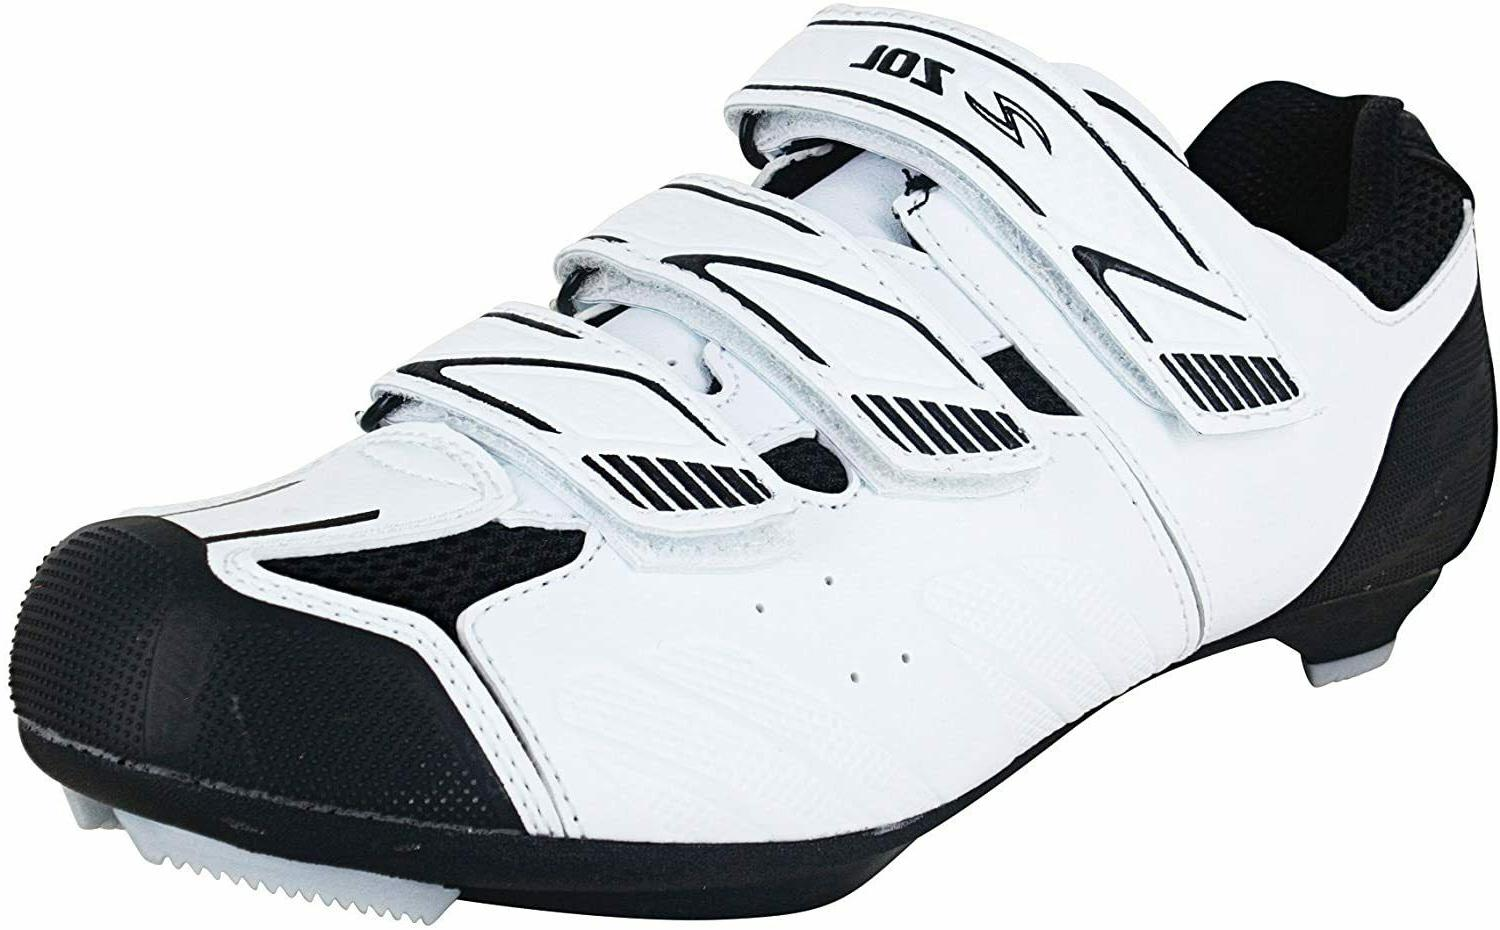 Zol Shoes Road Spin Shoes